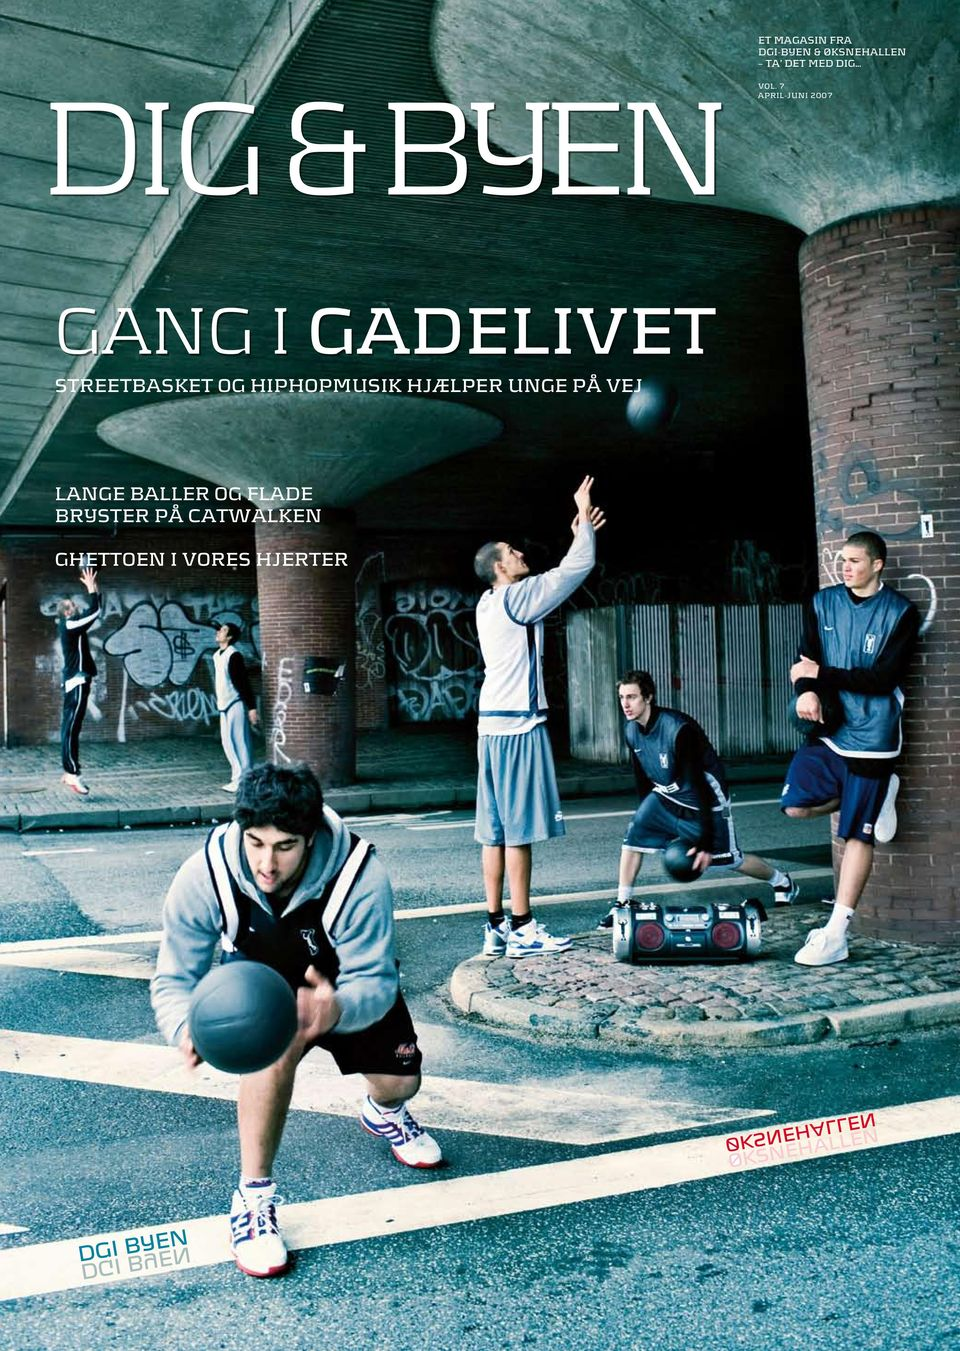 7 april-juni 2007 GANG I GADELIVET Streetbasket og